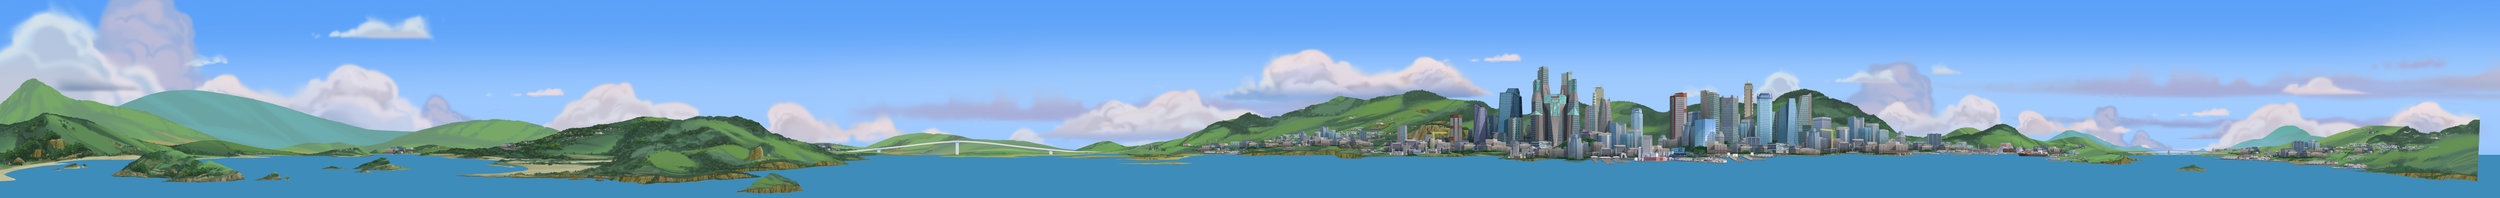 EP03 Matte painting